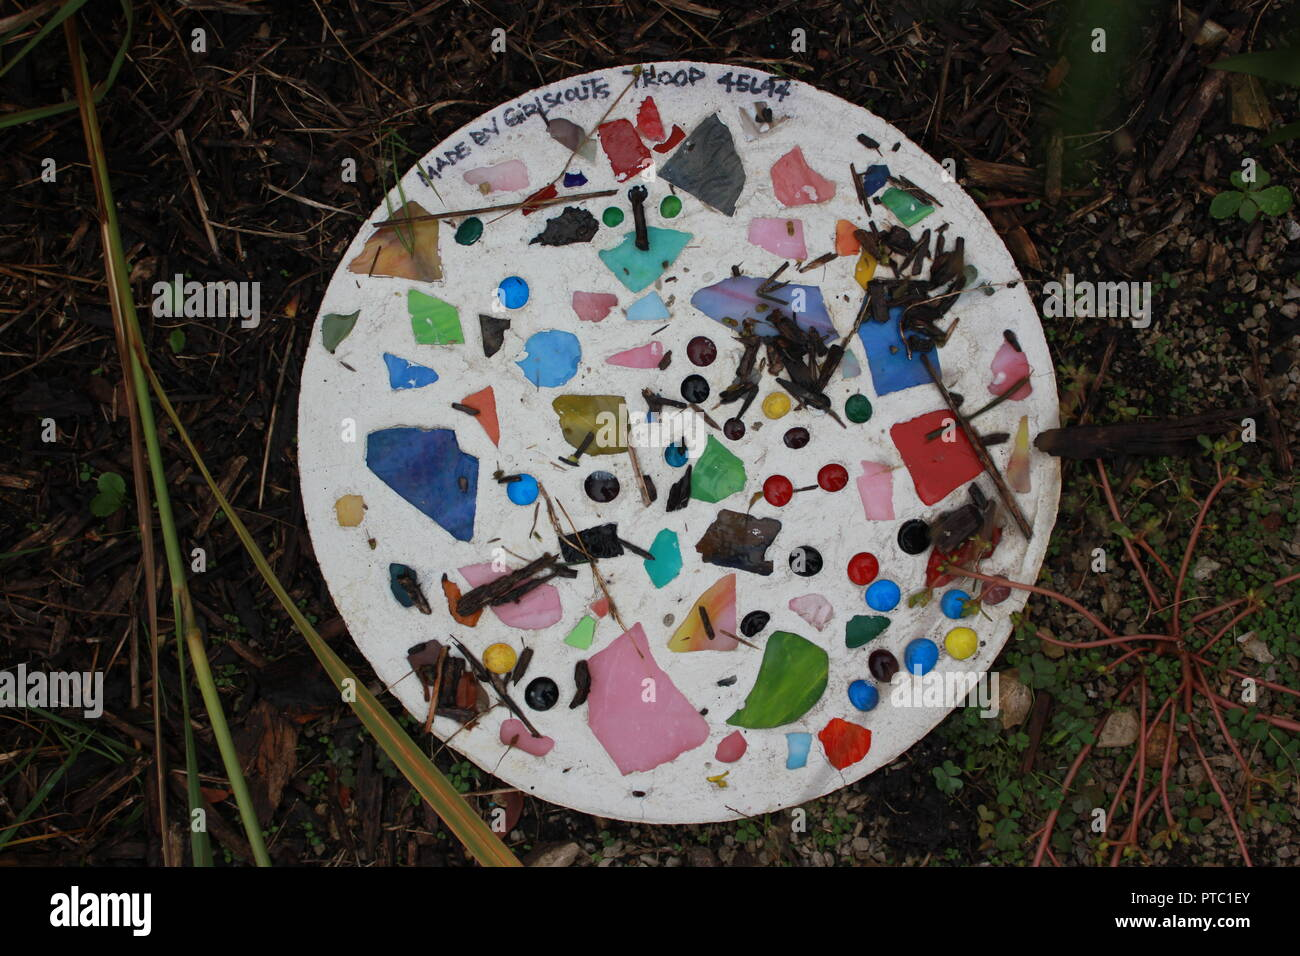 Community garden stepping stone craft created by the local Girl Scout Troop. - Stock Image